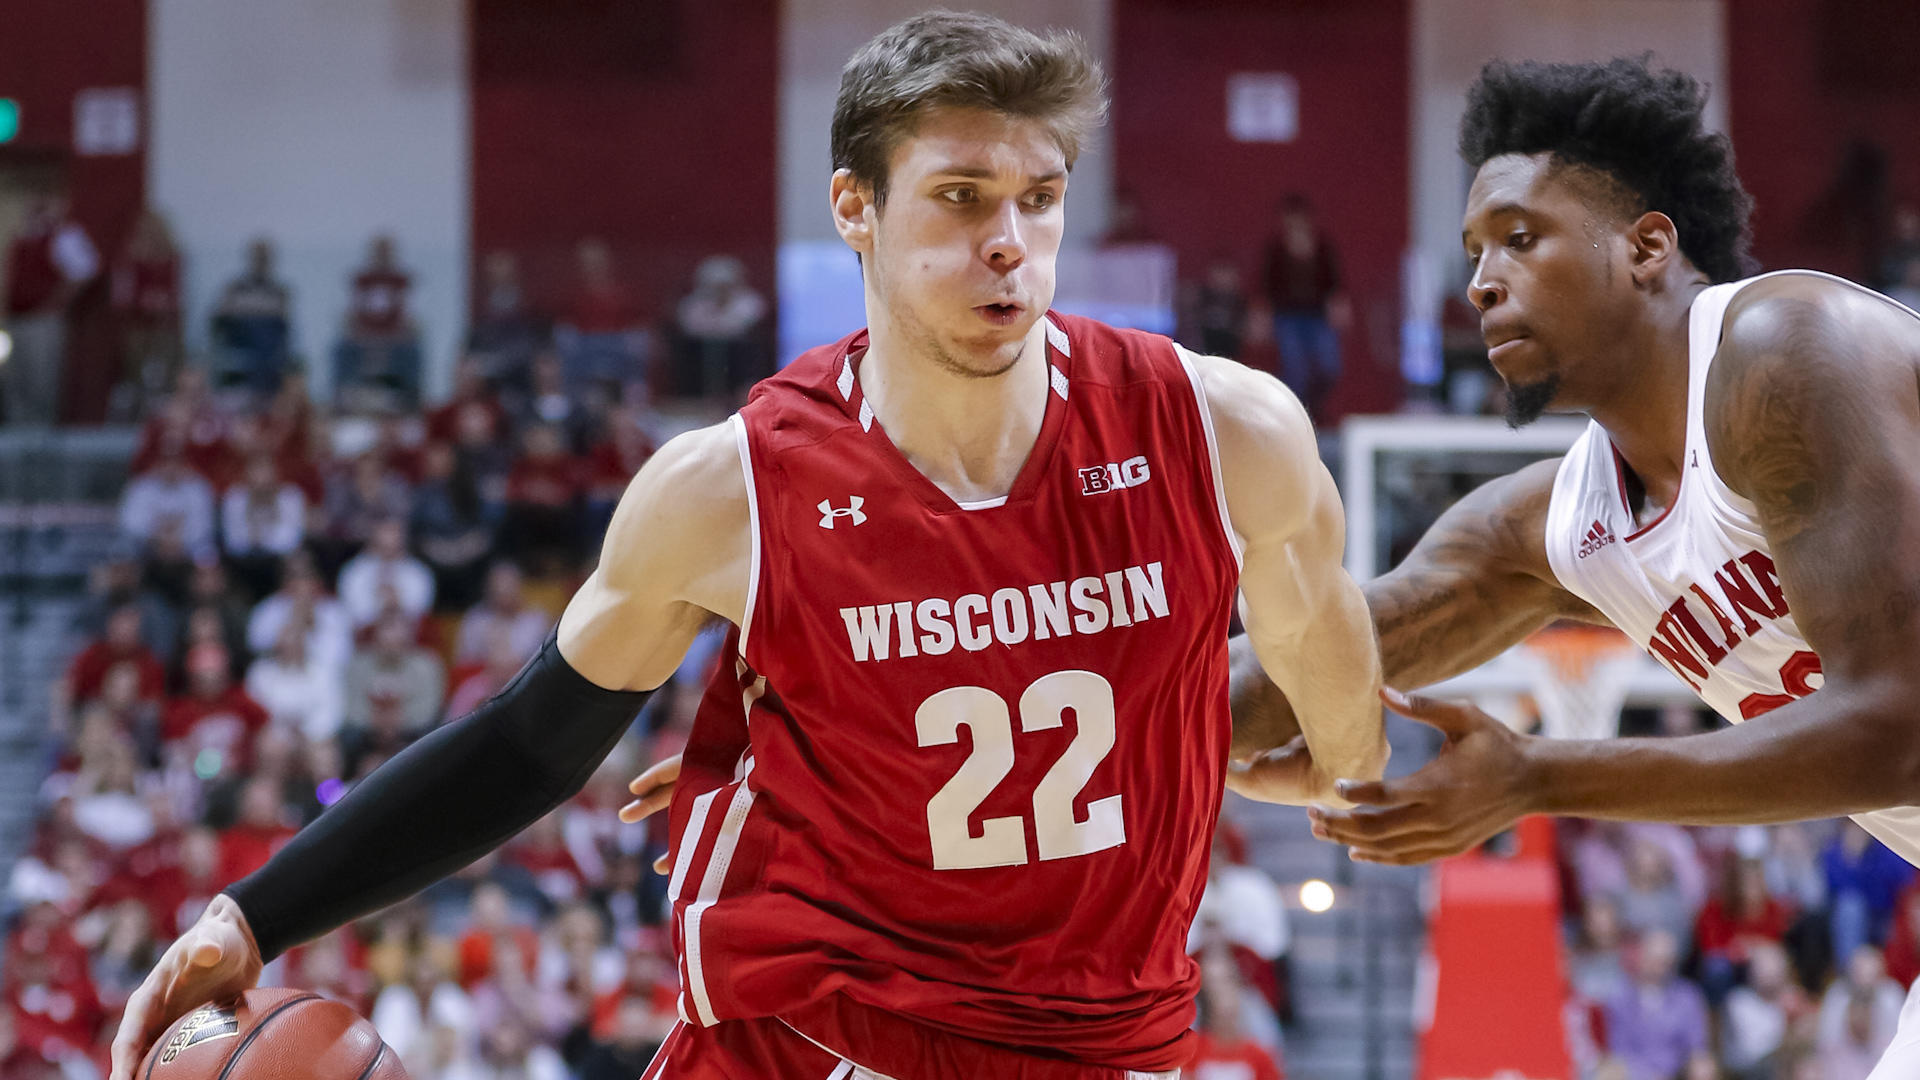 2019 March Madness: Wisconsin vs. Oregon odds, picks, predictions from computer simulation on 11-5 roll